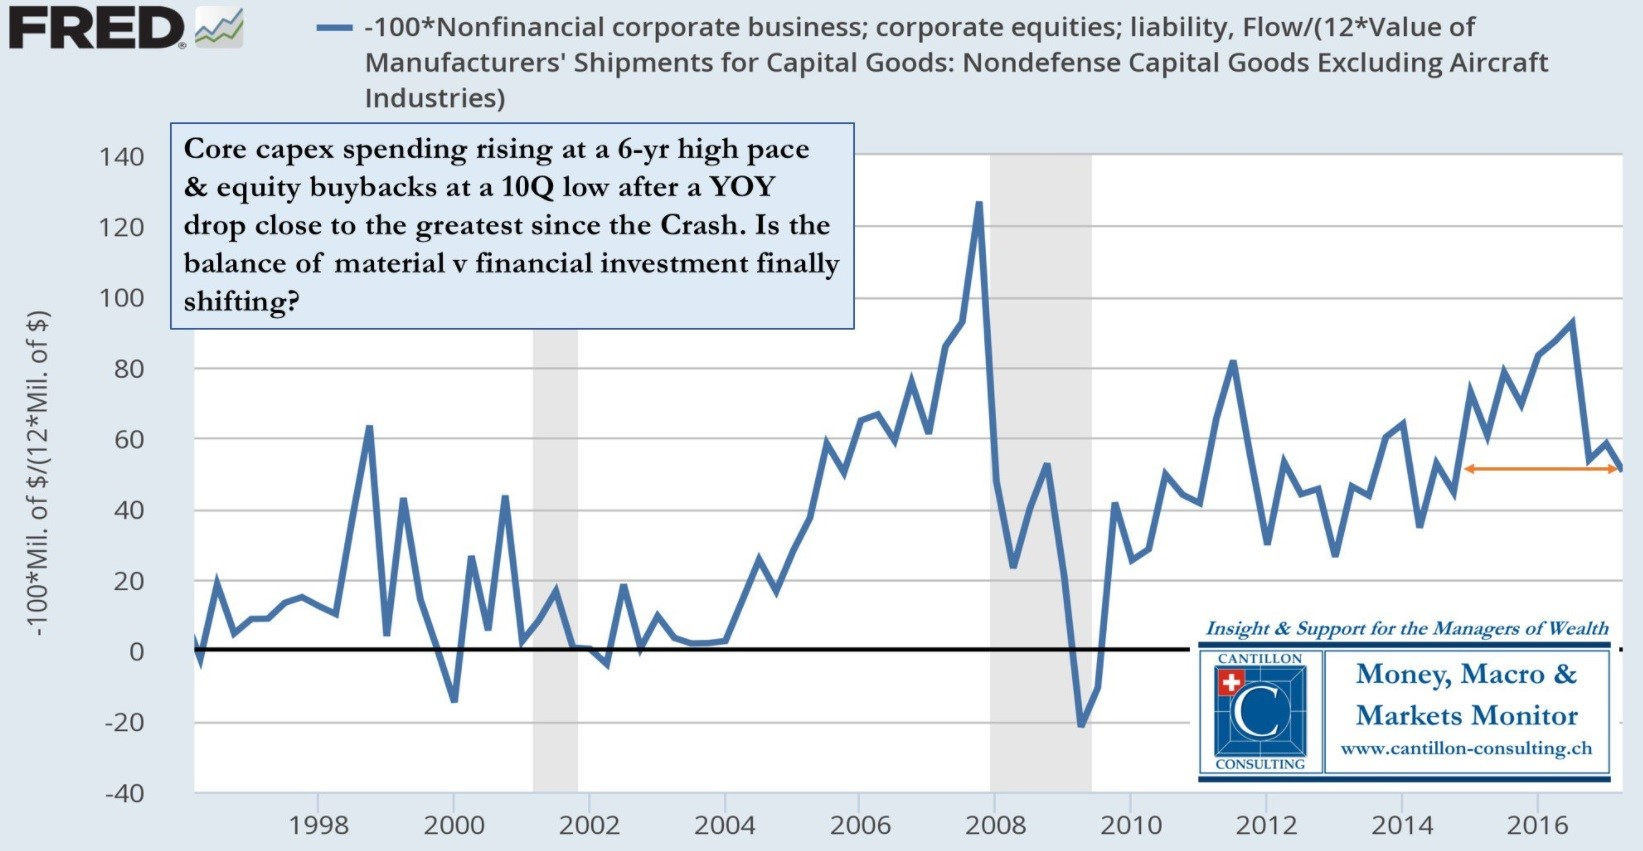 Core Capital Investment Up & Buybacks Down